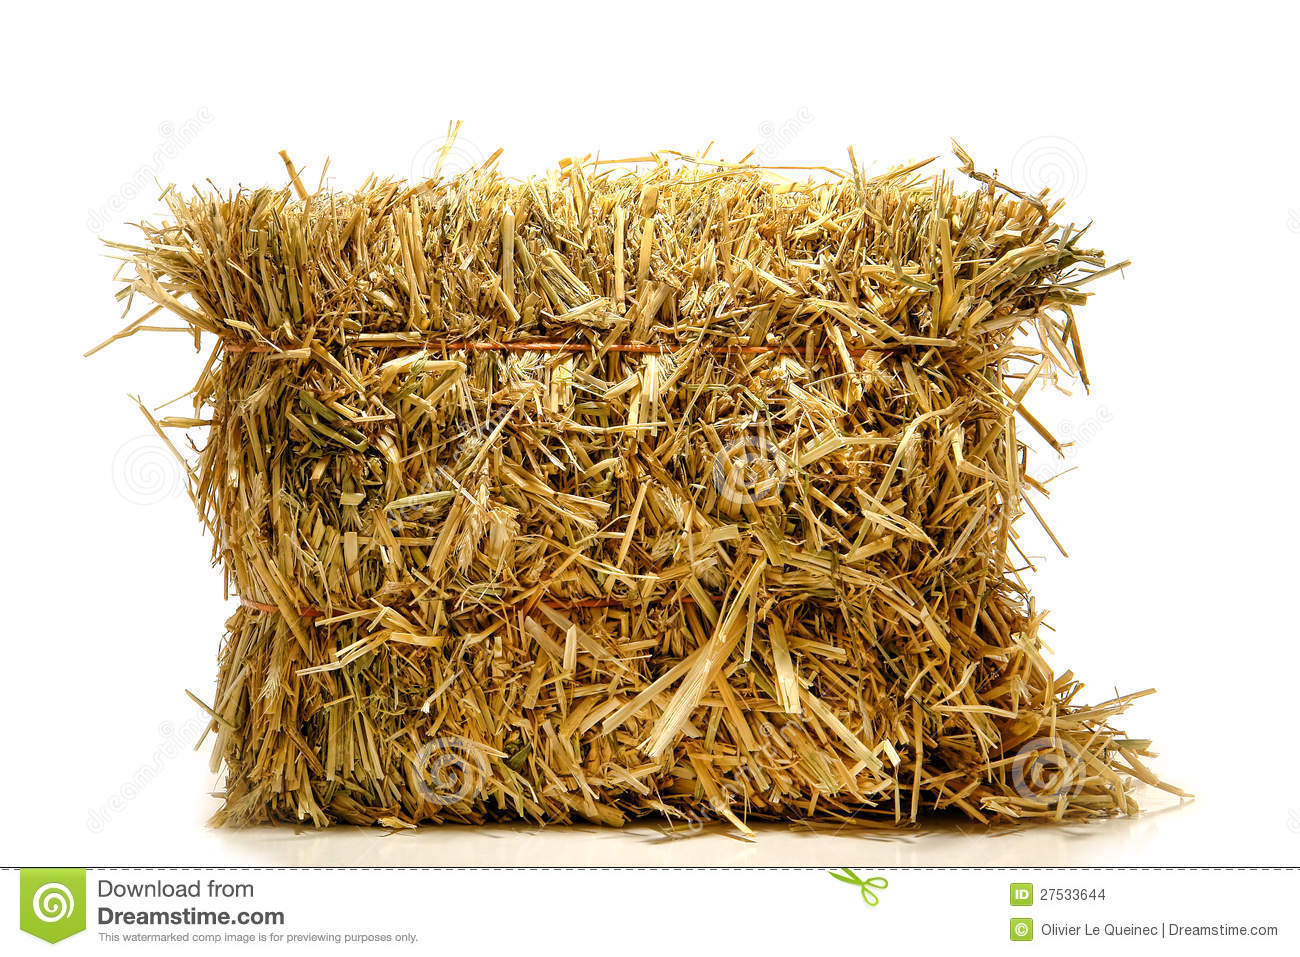 Of Natural Farming Straw Hay Over White Stock Images - Image: 27533644 ... Xoloitzcuintli On Sale